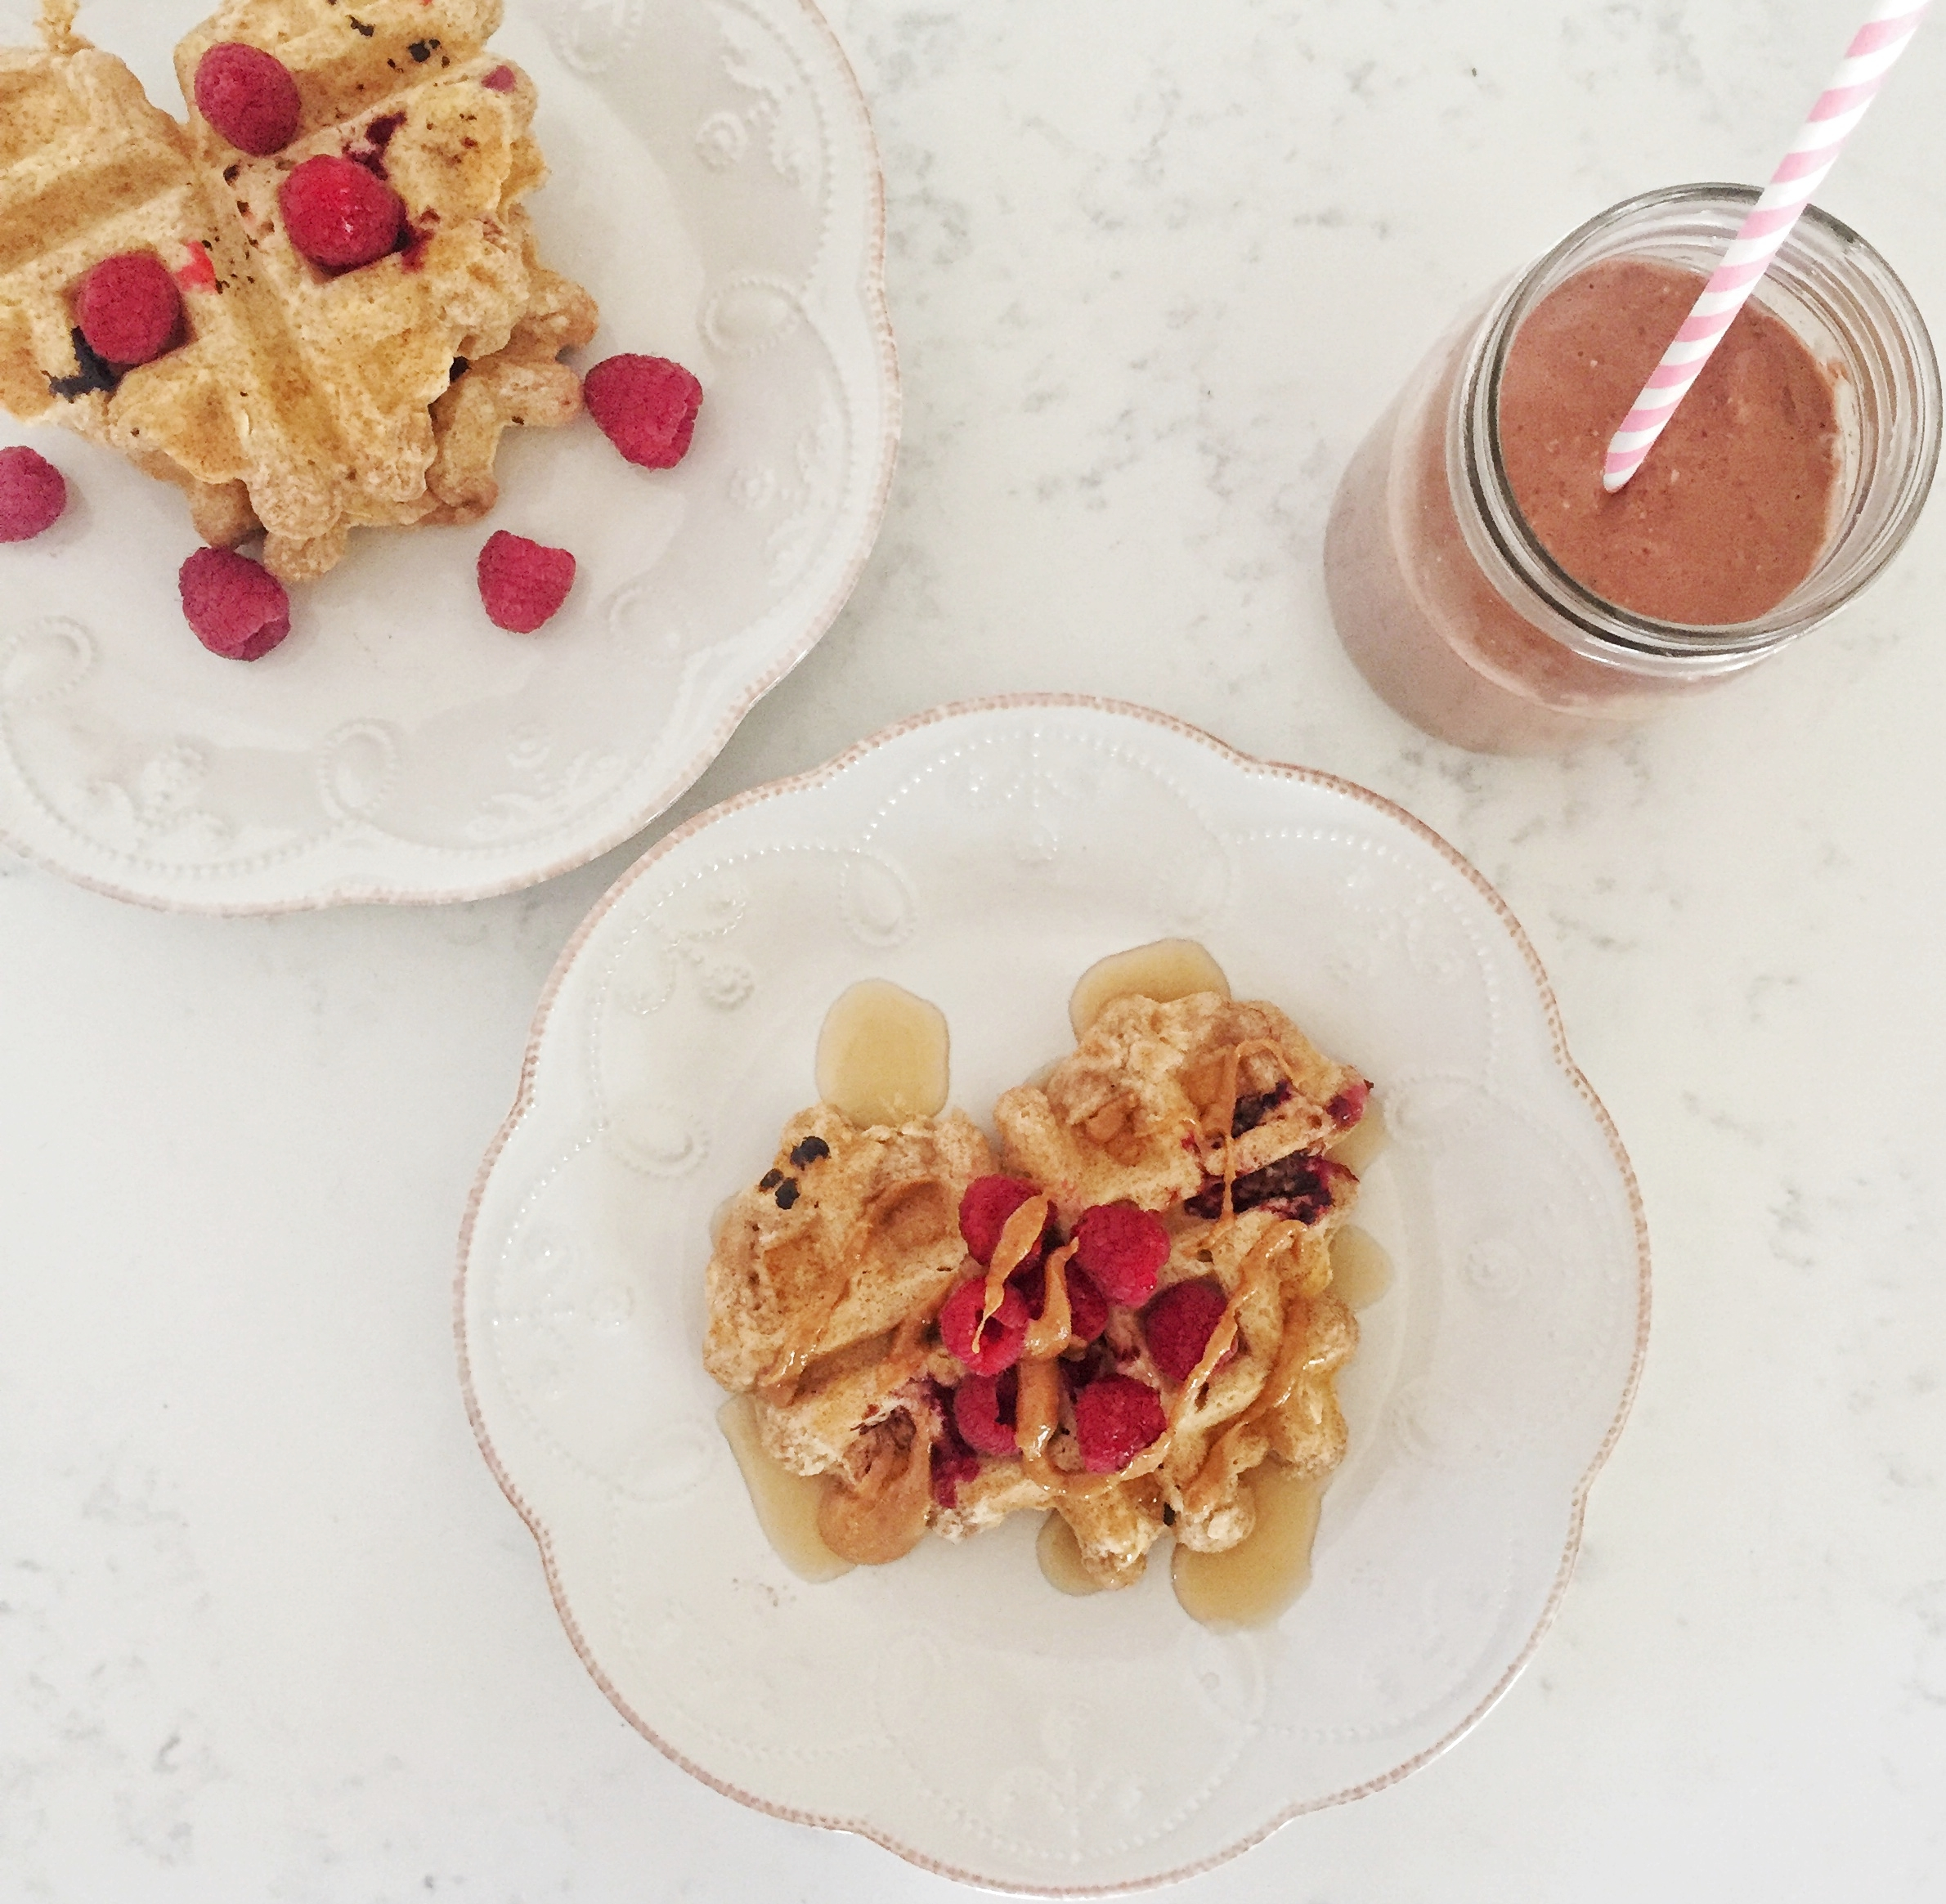 Spelt orange and raspberry waffles for your galentine's day brunch